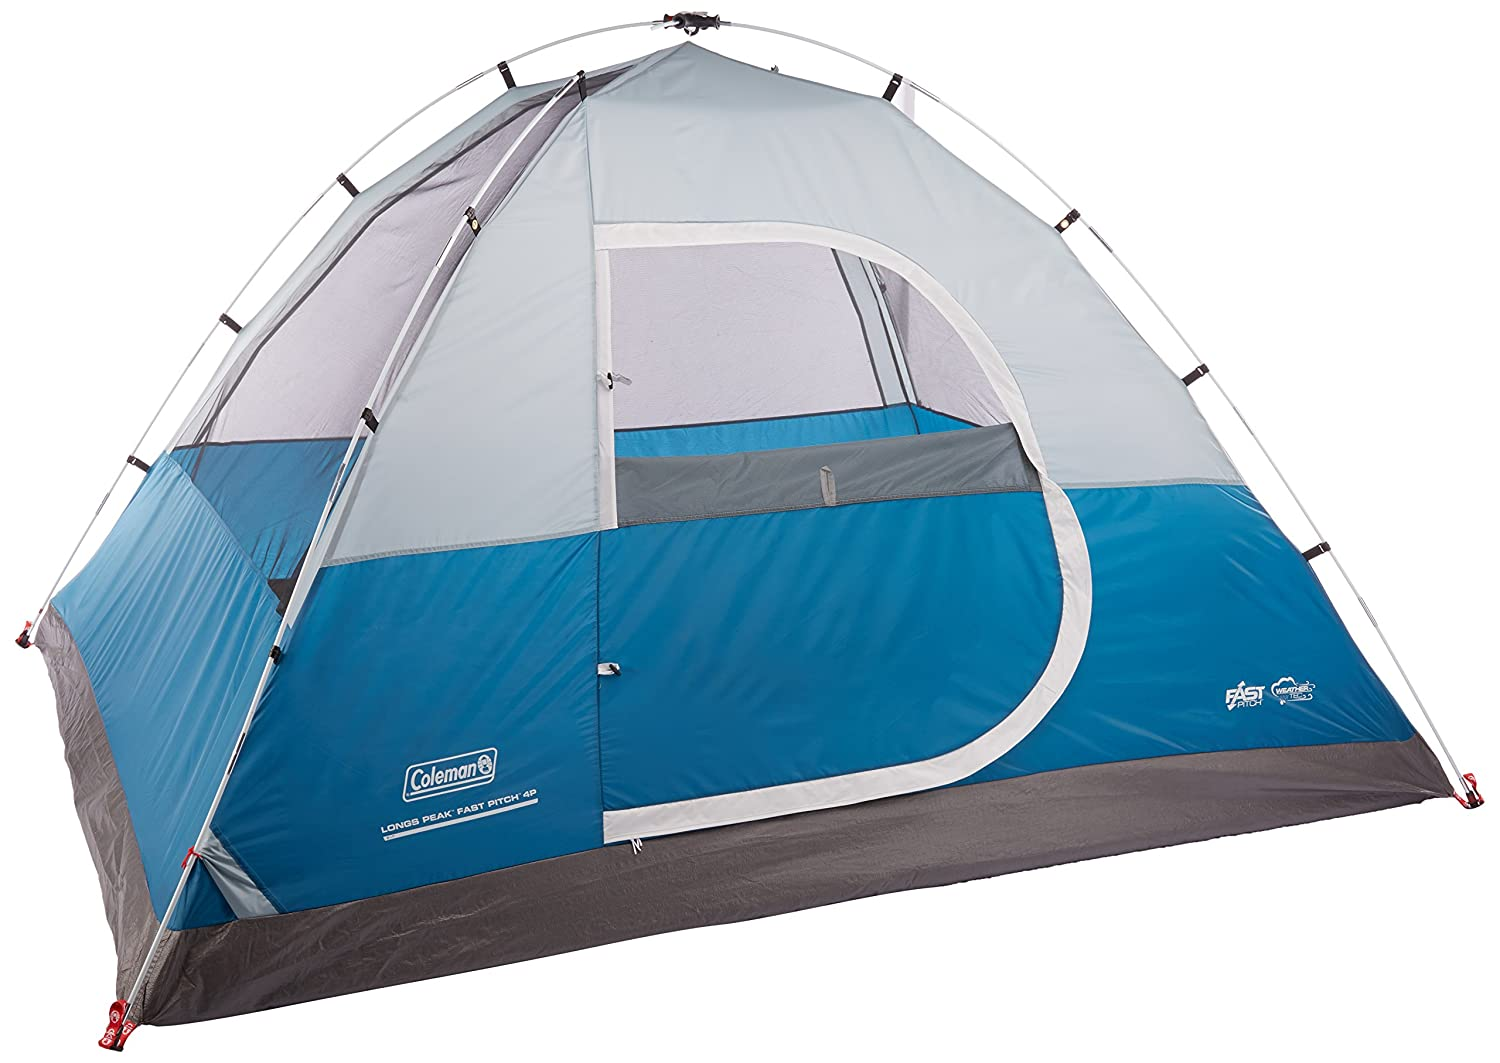 Amazon.com  Coleman Longs Peak 4 Person Fast Pitch Dome Tent  Sports u0026 Outdoors  sc 1 st  Amazon.com & Amazon.com : Coleman Longs Peak 4 Person Fast Pitch Dome Tent ...